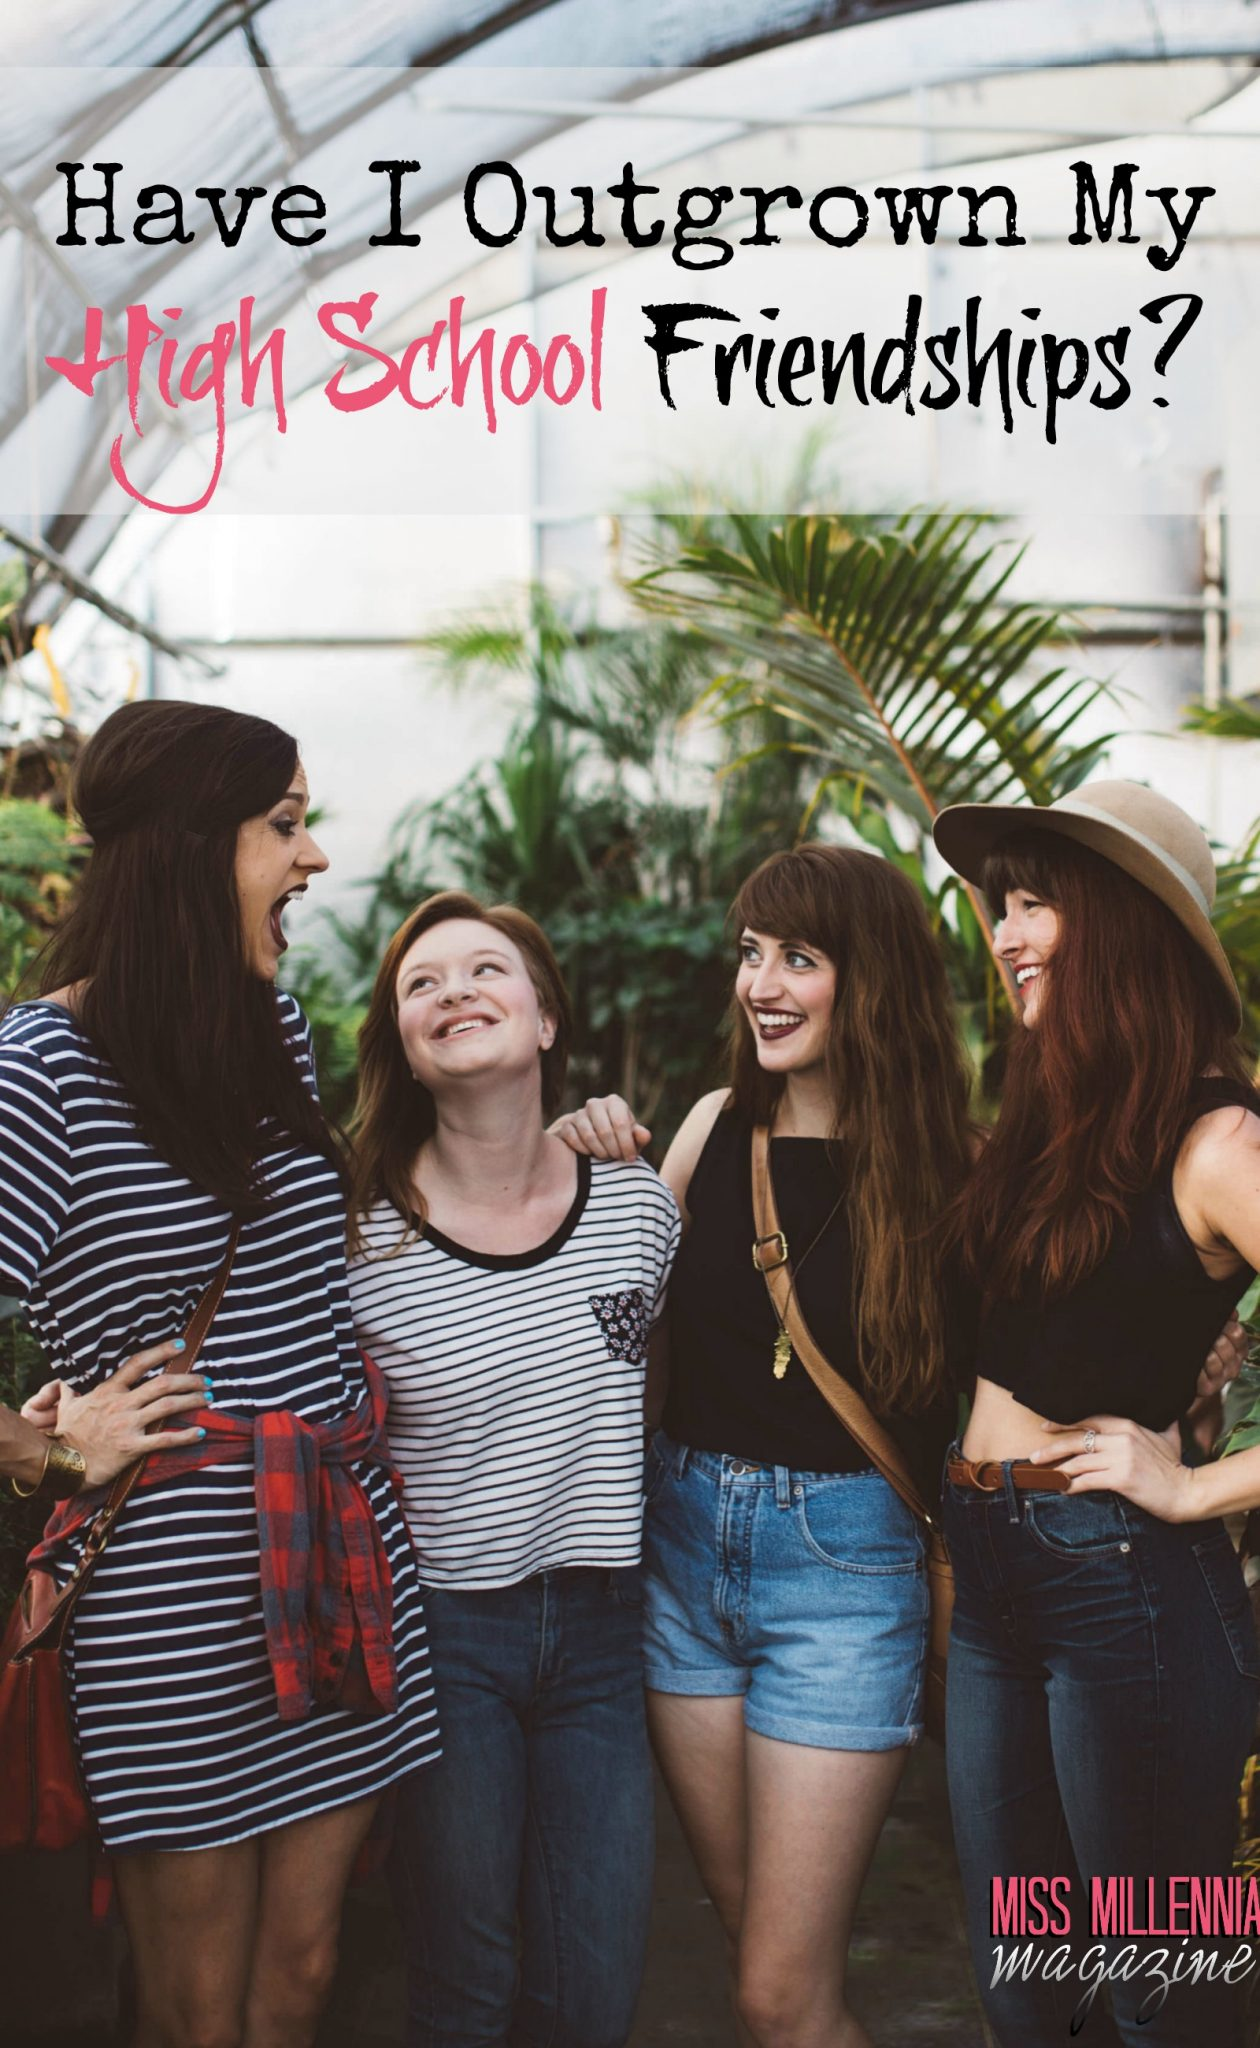 Have I Outgrown My High School Friendships?